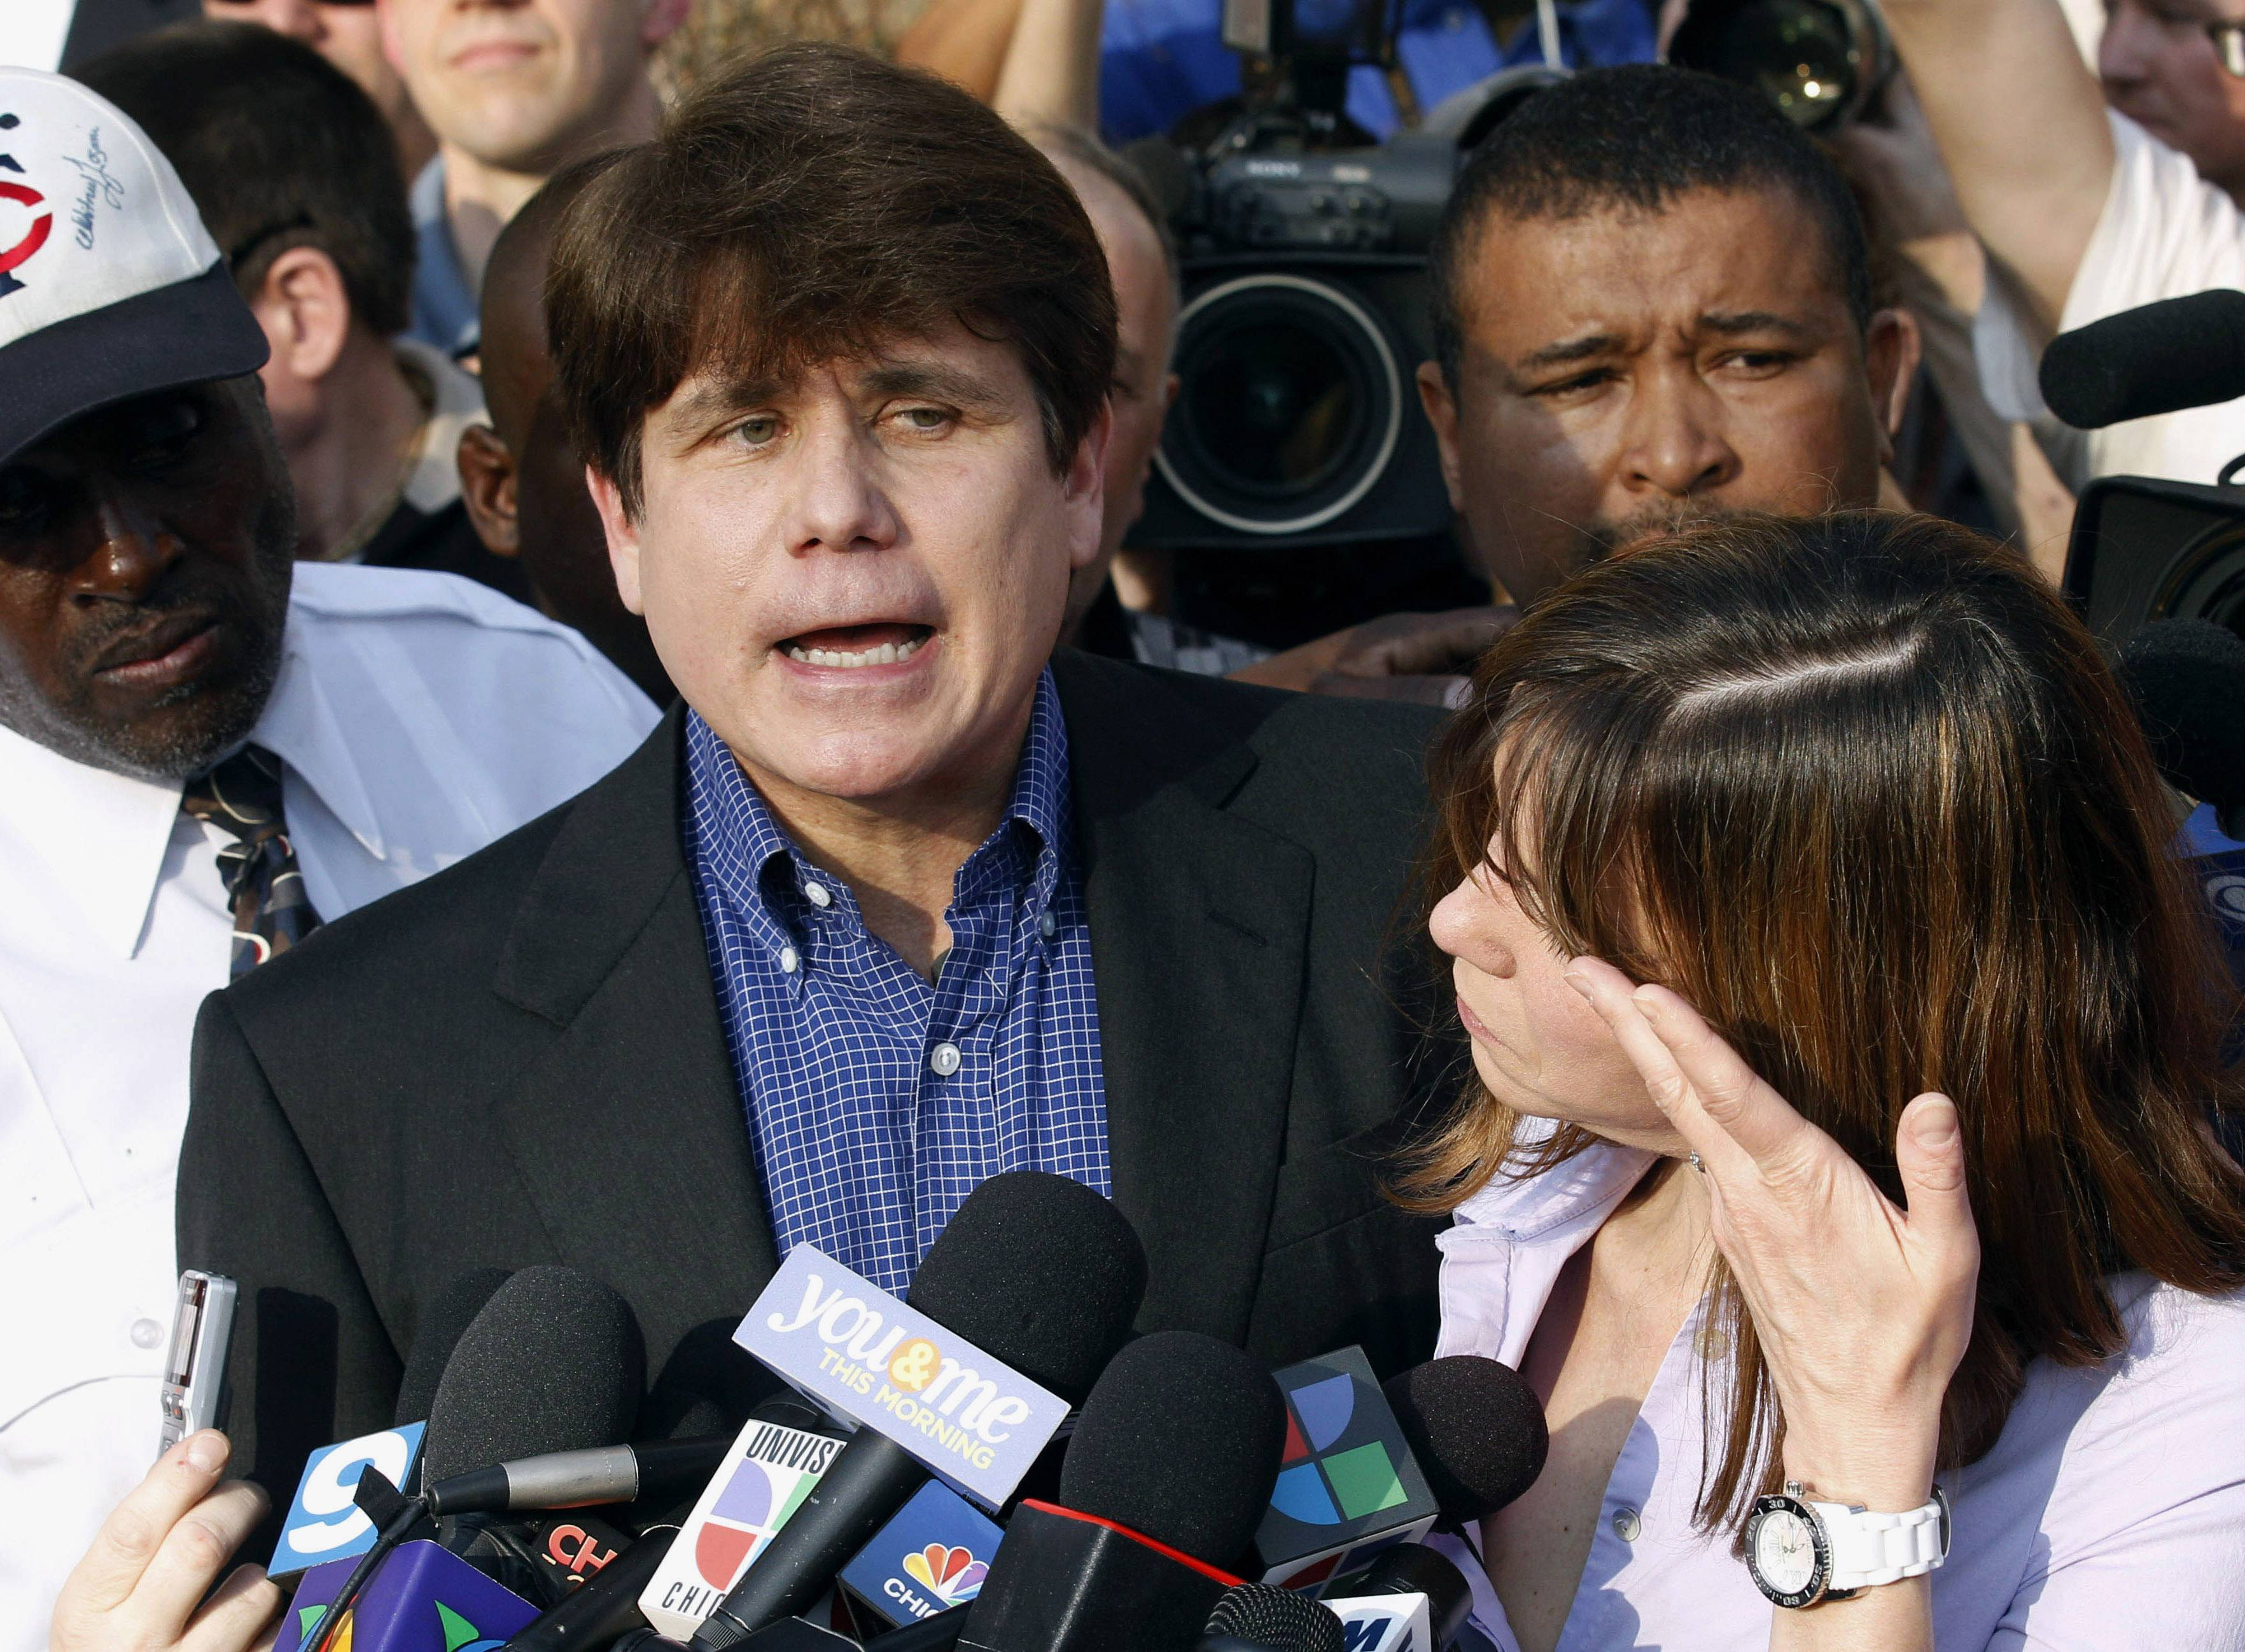 "On Monday, July 25, 2016, federal prosecutors said statements Blagojevich has made prove he isn't ""deserving of leniency."" A resentencing hearing is scheduled next month for Blagojevich, who is hoping a federal judge will give him a five-year sentence instead of his original 14 years. (AP Photo/M. Spencer Green, File, 2012)"